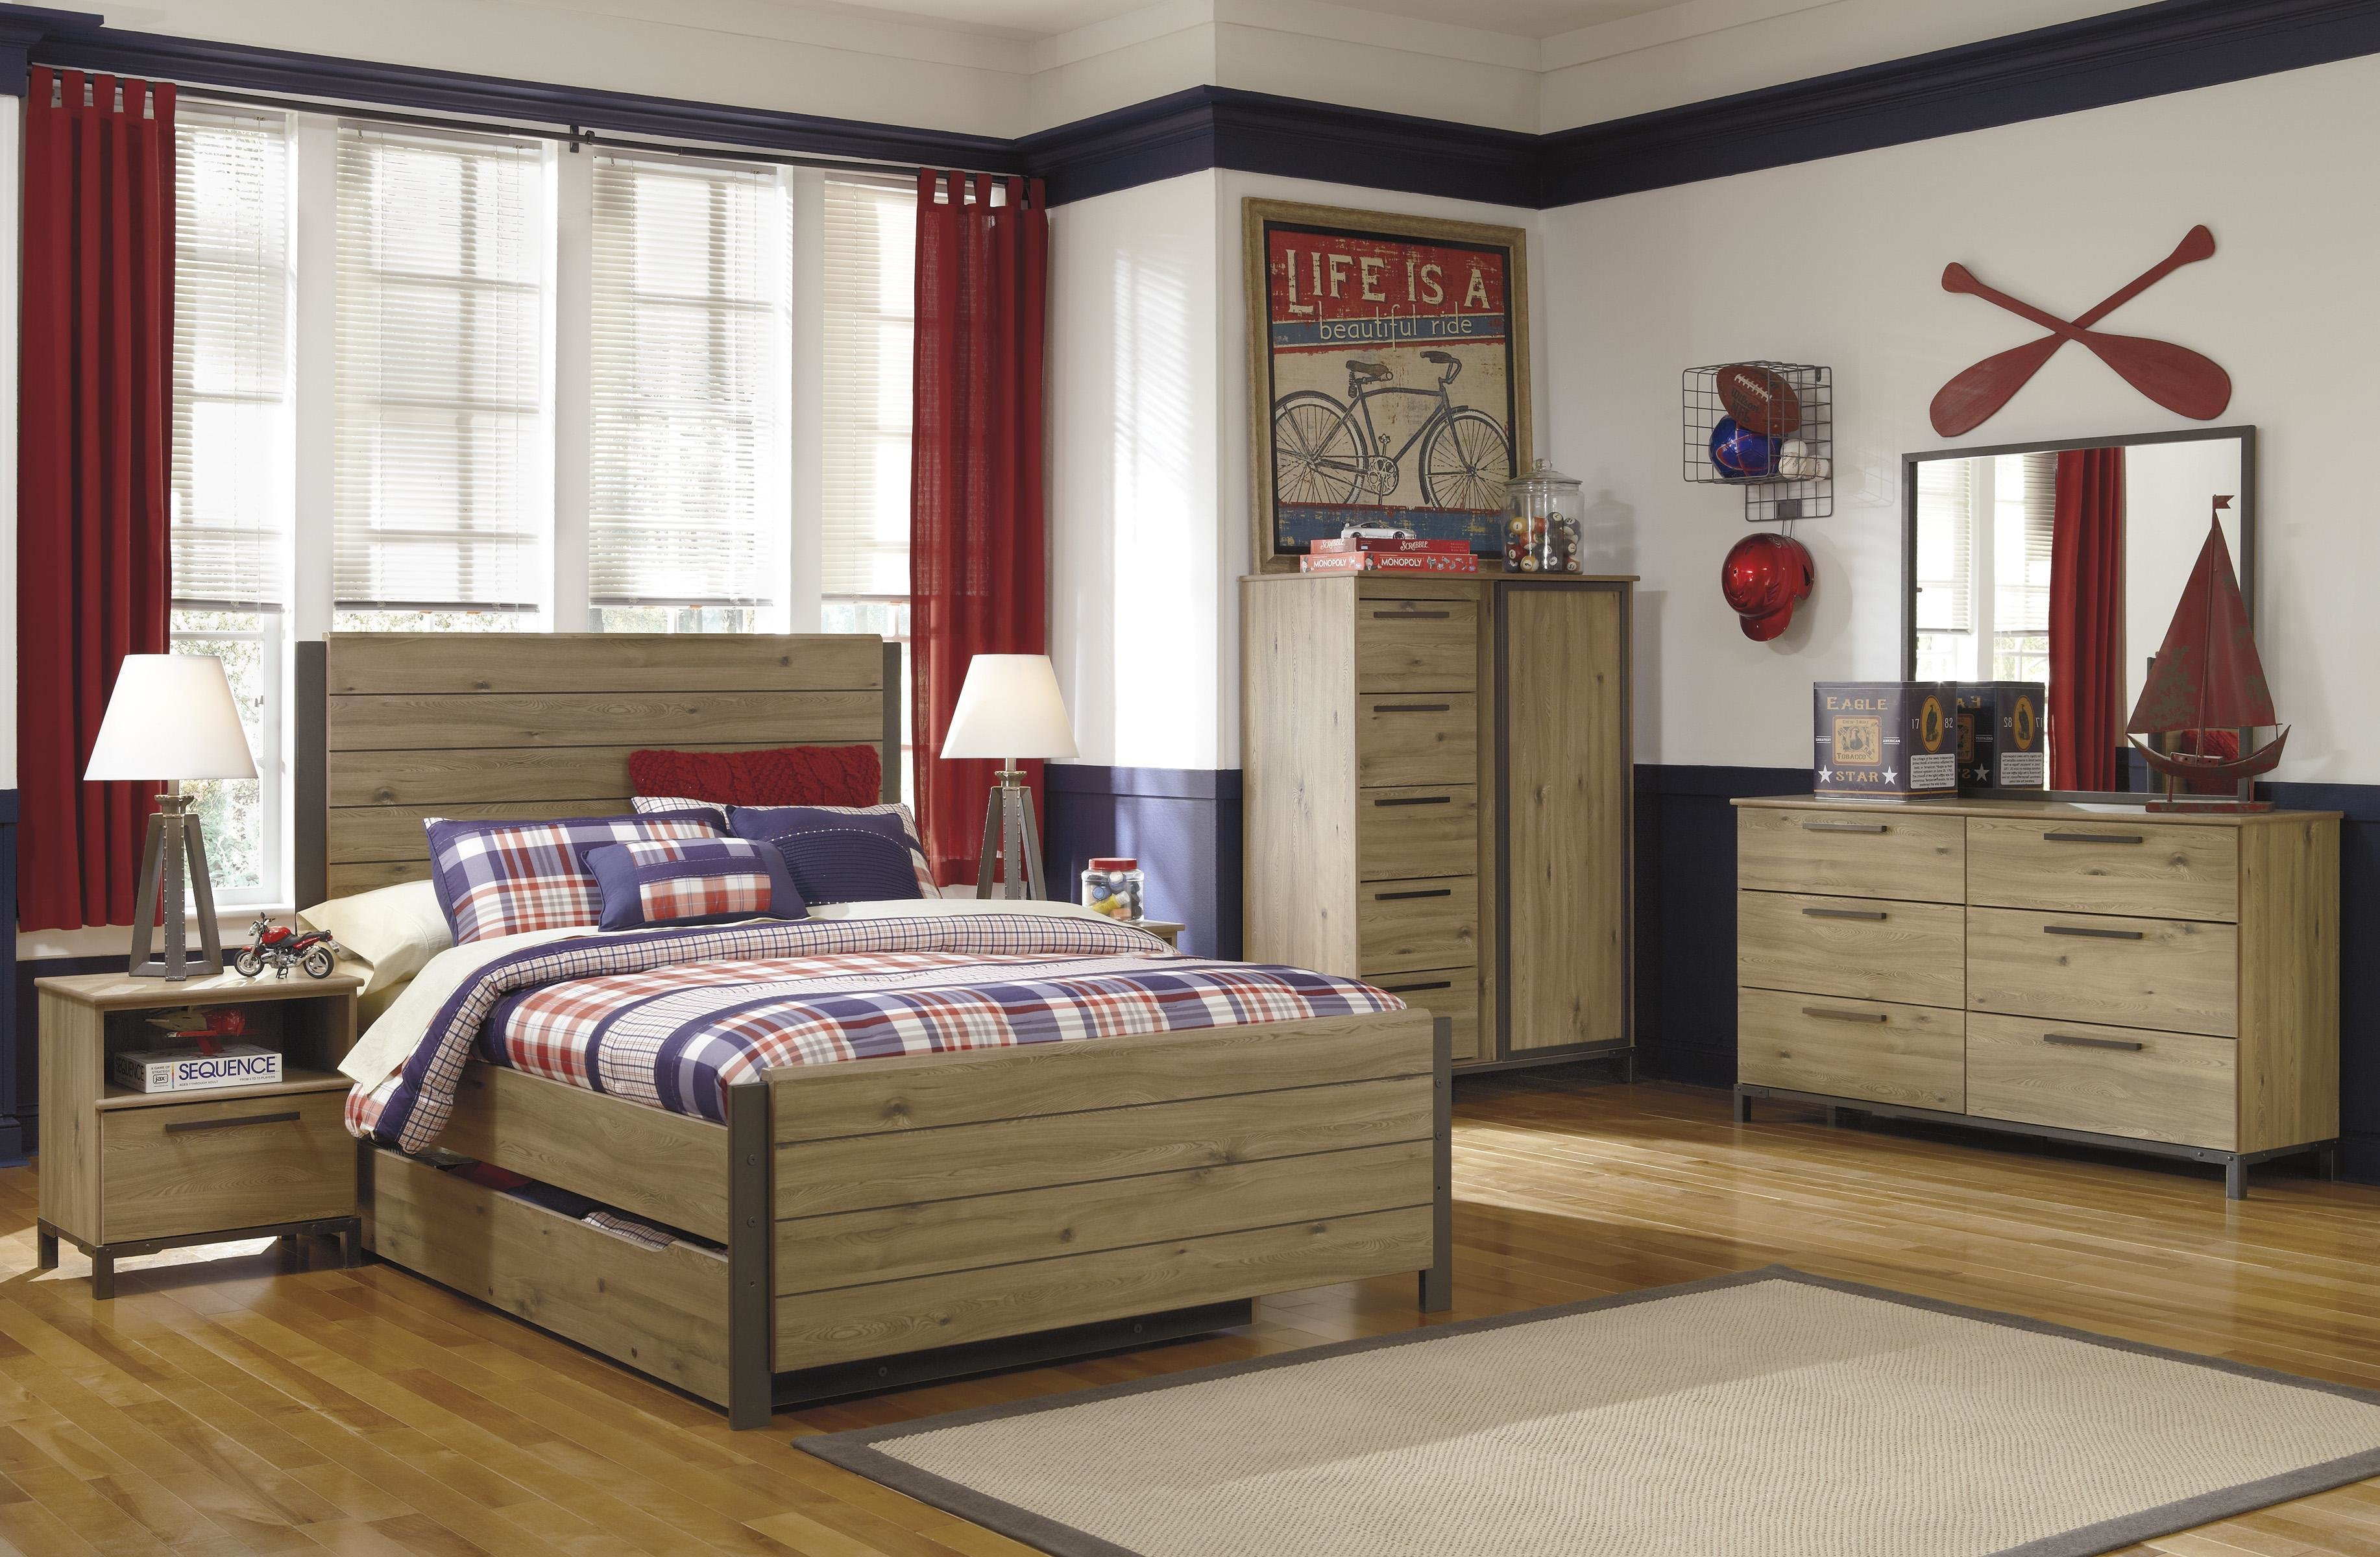 Best Kids Bedroom Furniture A1 Furniture Mattress Madison With Pictures